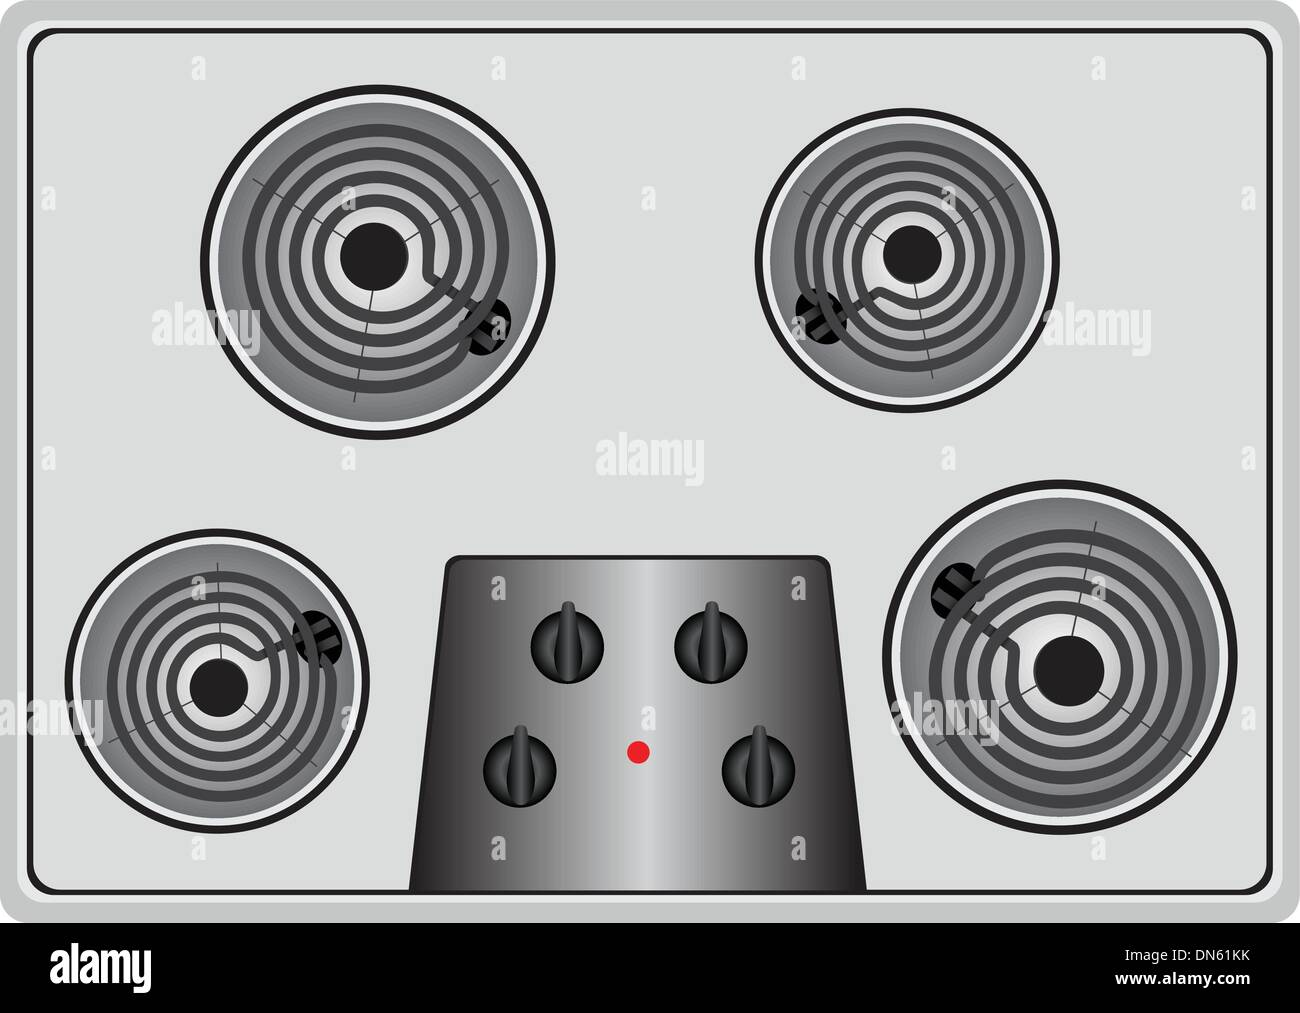 Electric stove four element - Stock Vector